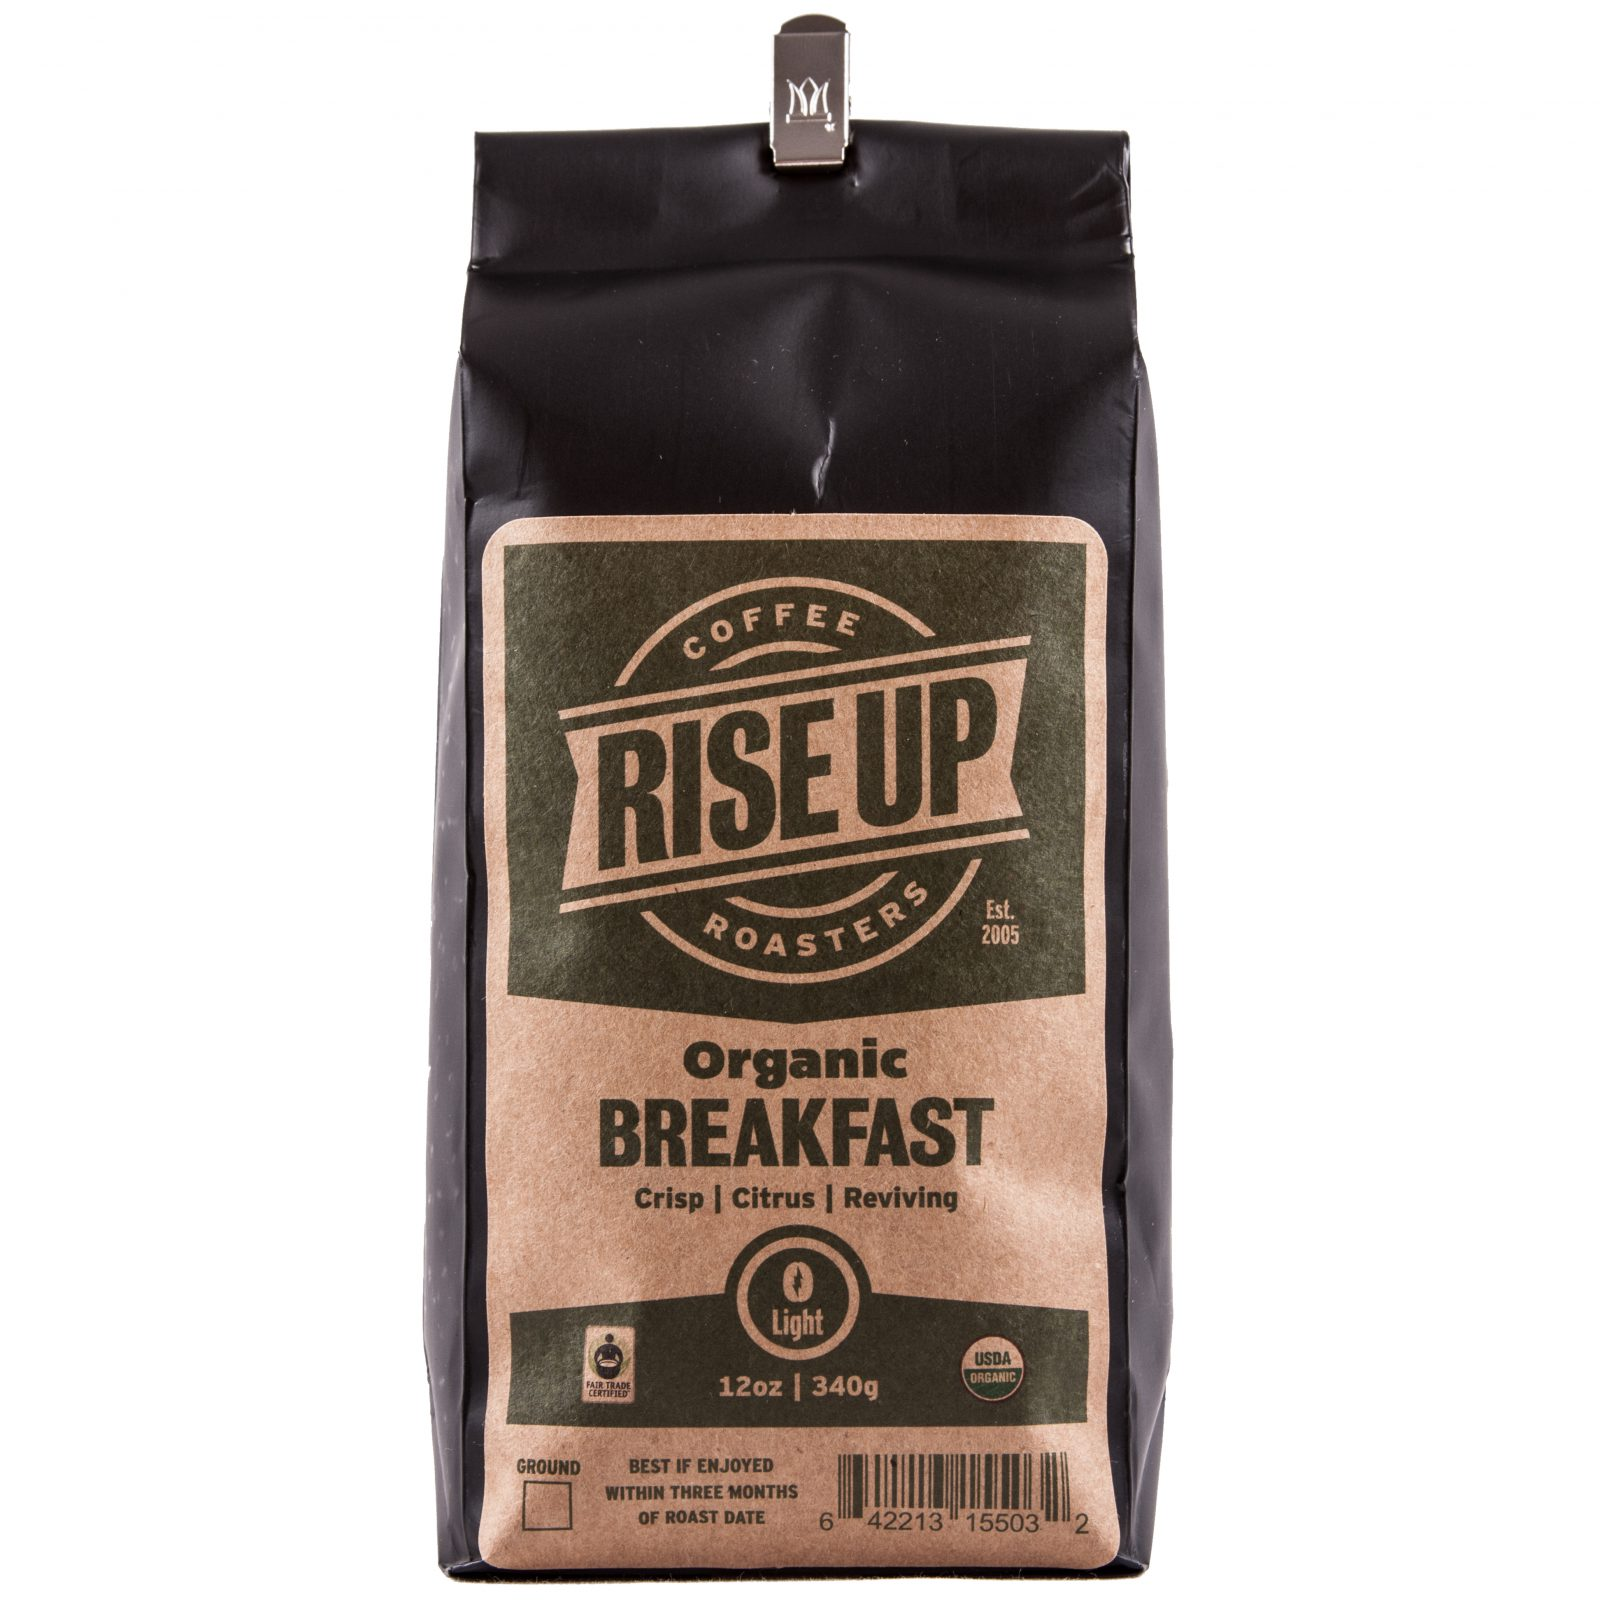 Coffee-12oz-Breakfast-1600x1600.jpg